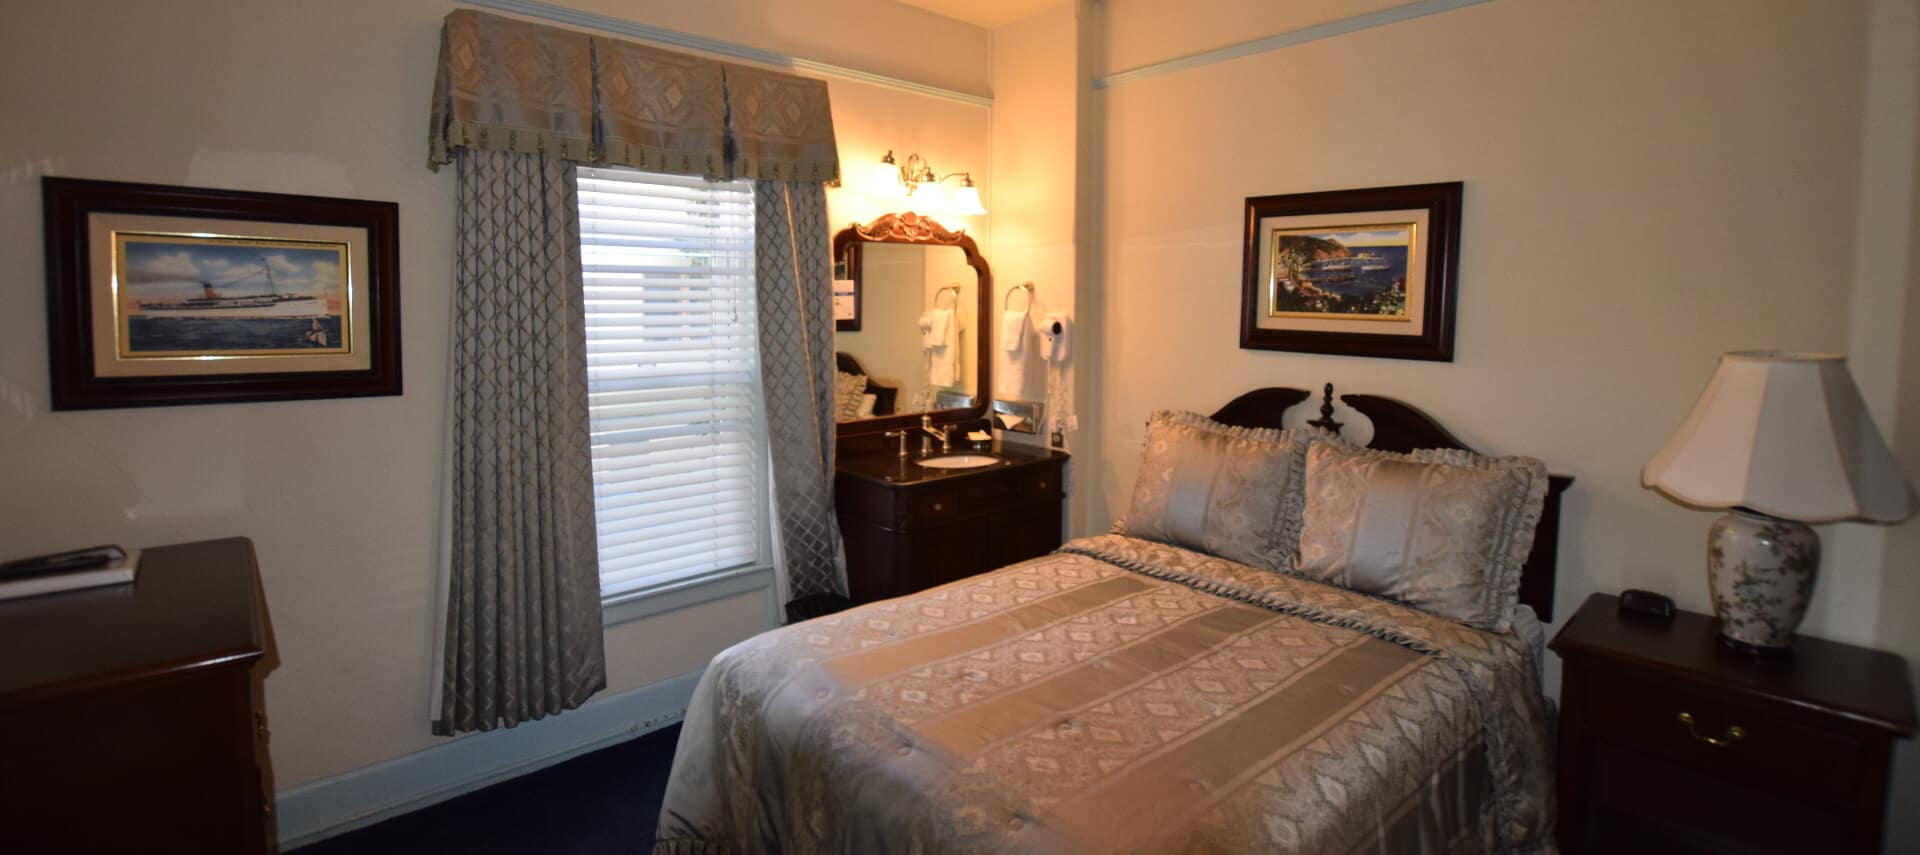 Bedroom with Queen bed, large window and antique dresser with mirror.